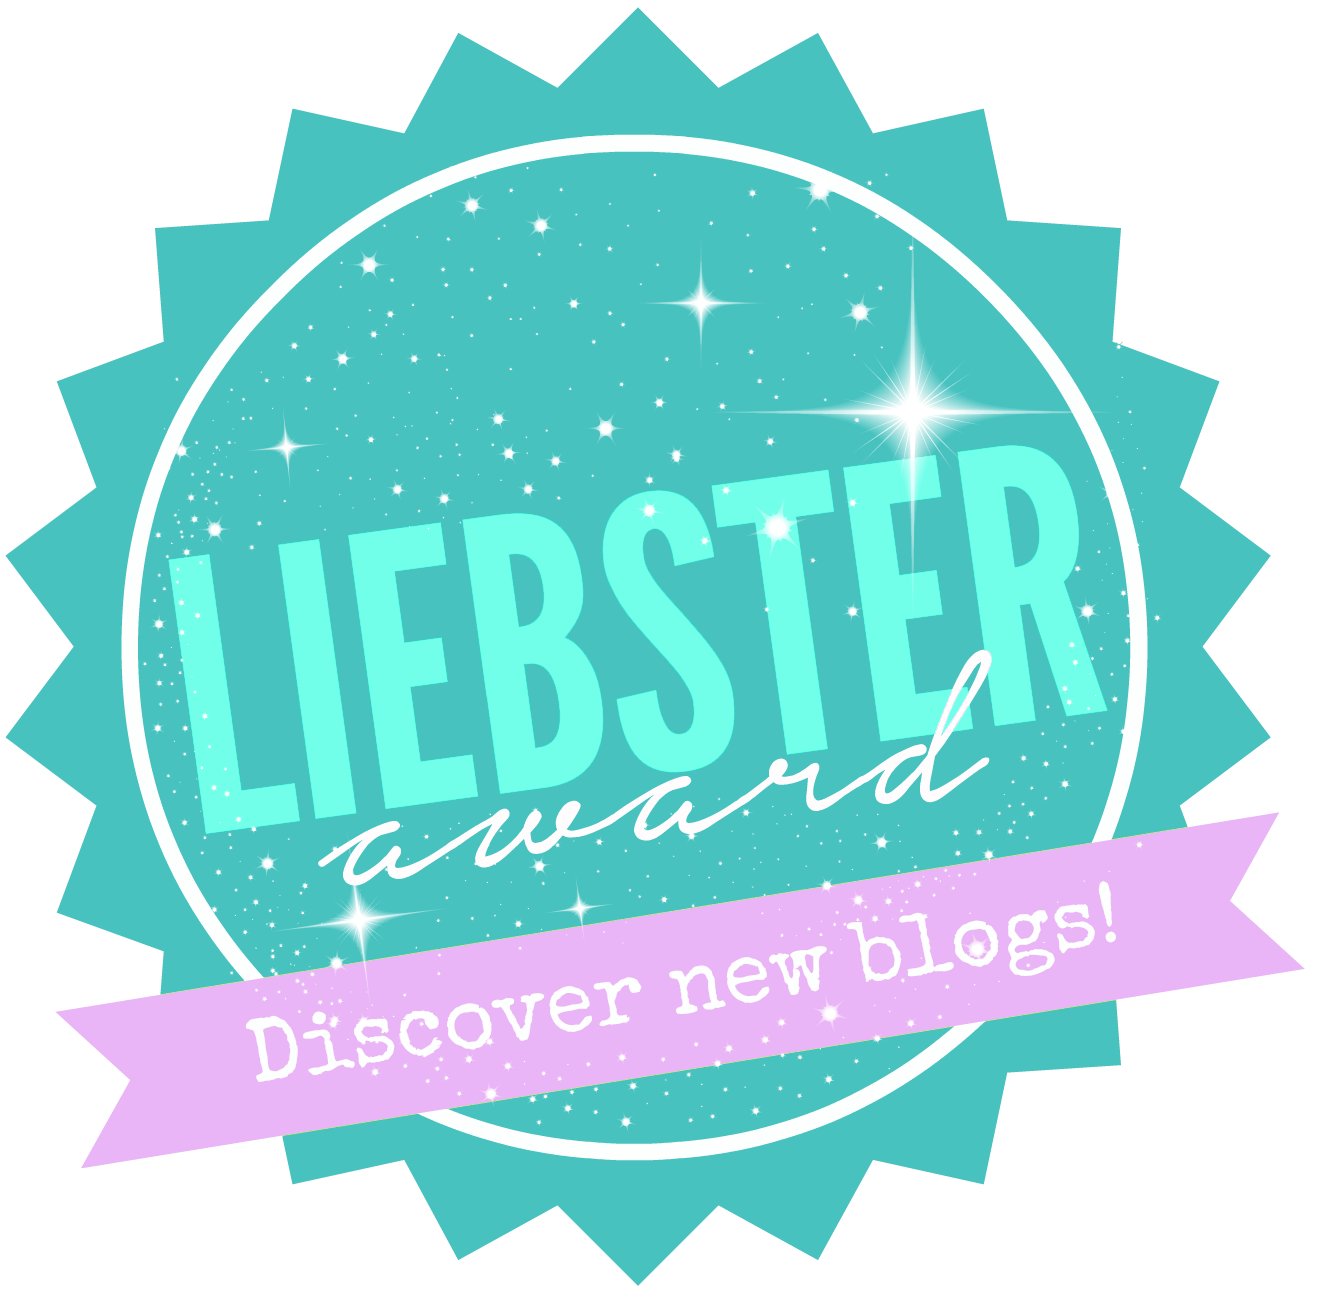 Nominación a los Liebster Award